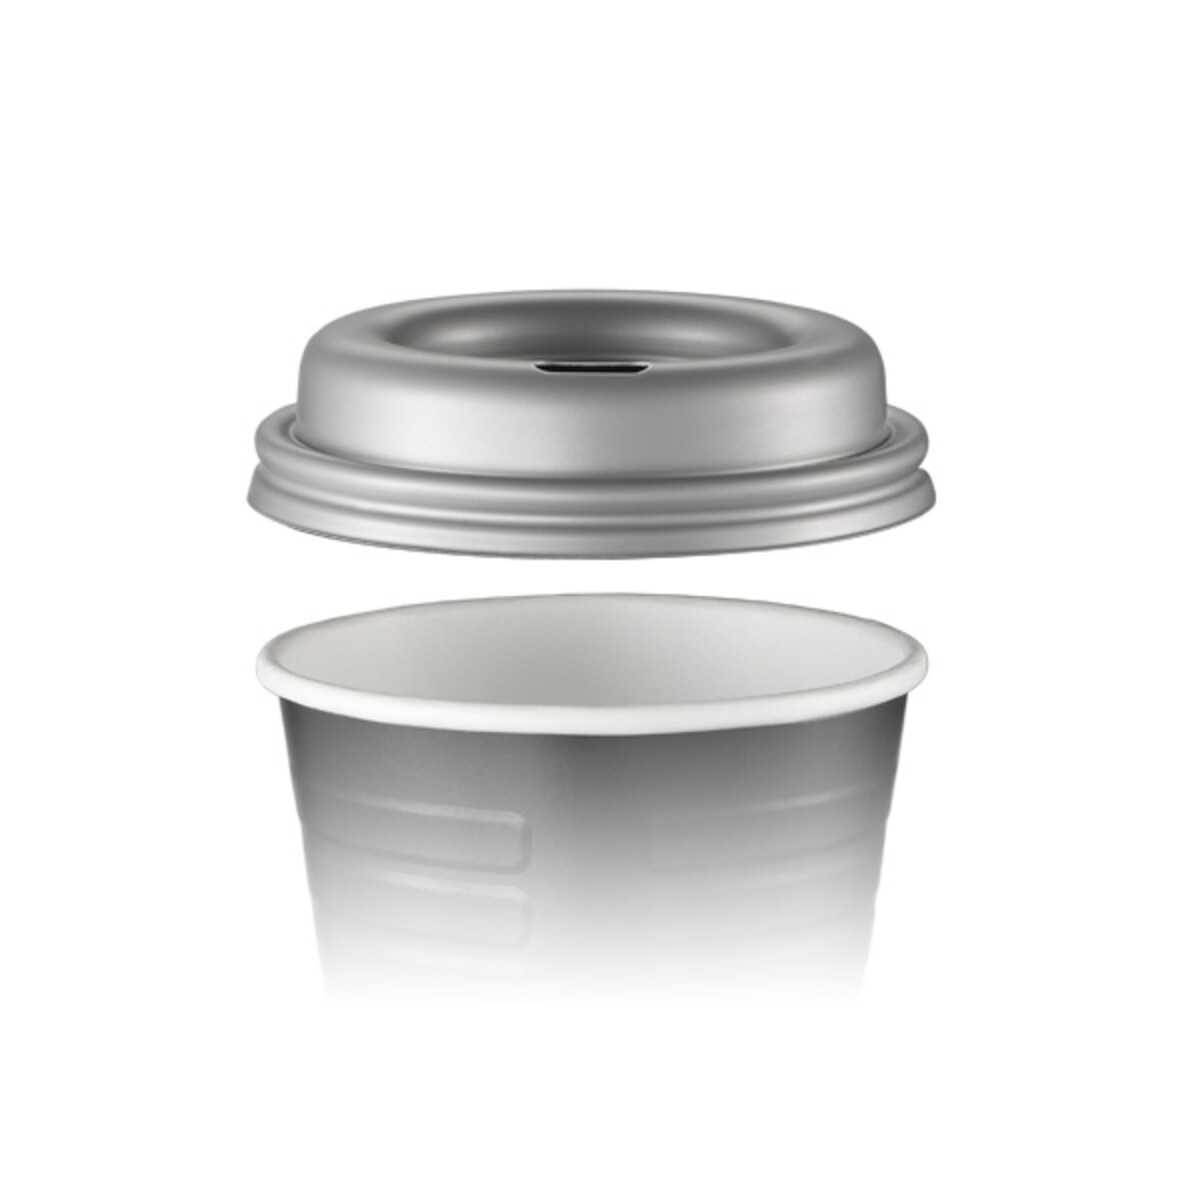 Nespresso Take away Lid - Large